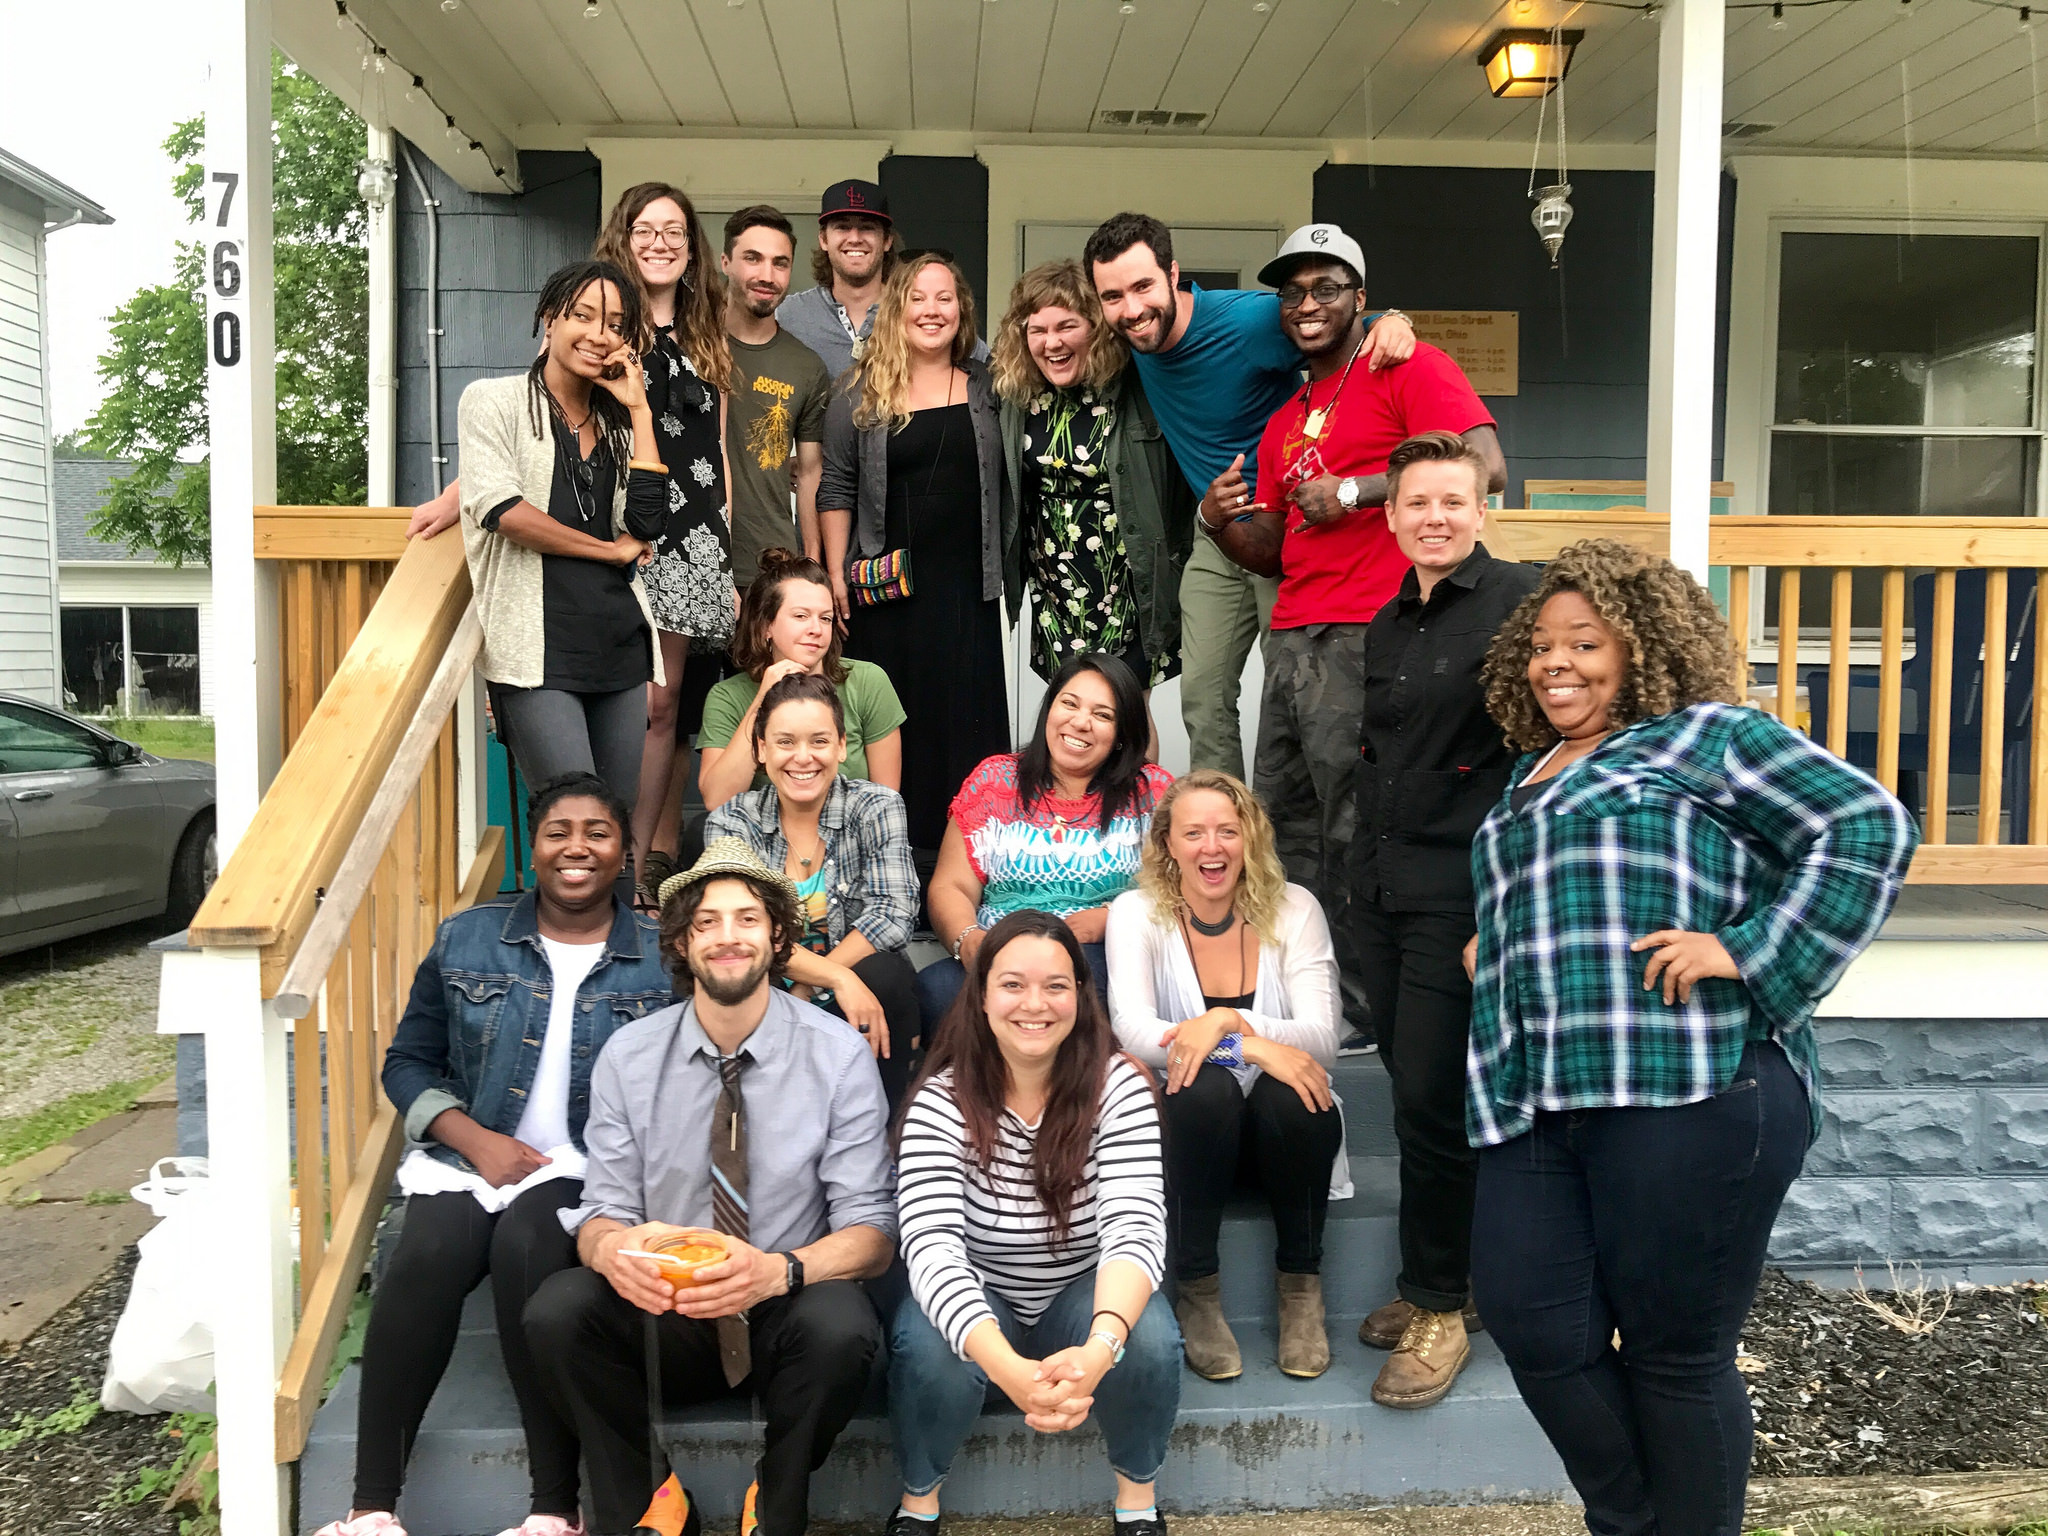 """The convening was my highlight. For a few days I really did feel less alone in this work: big things felt possible together."" - Rebecca Henderson, 2017 Charlotte Fellow"